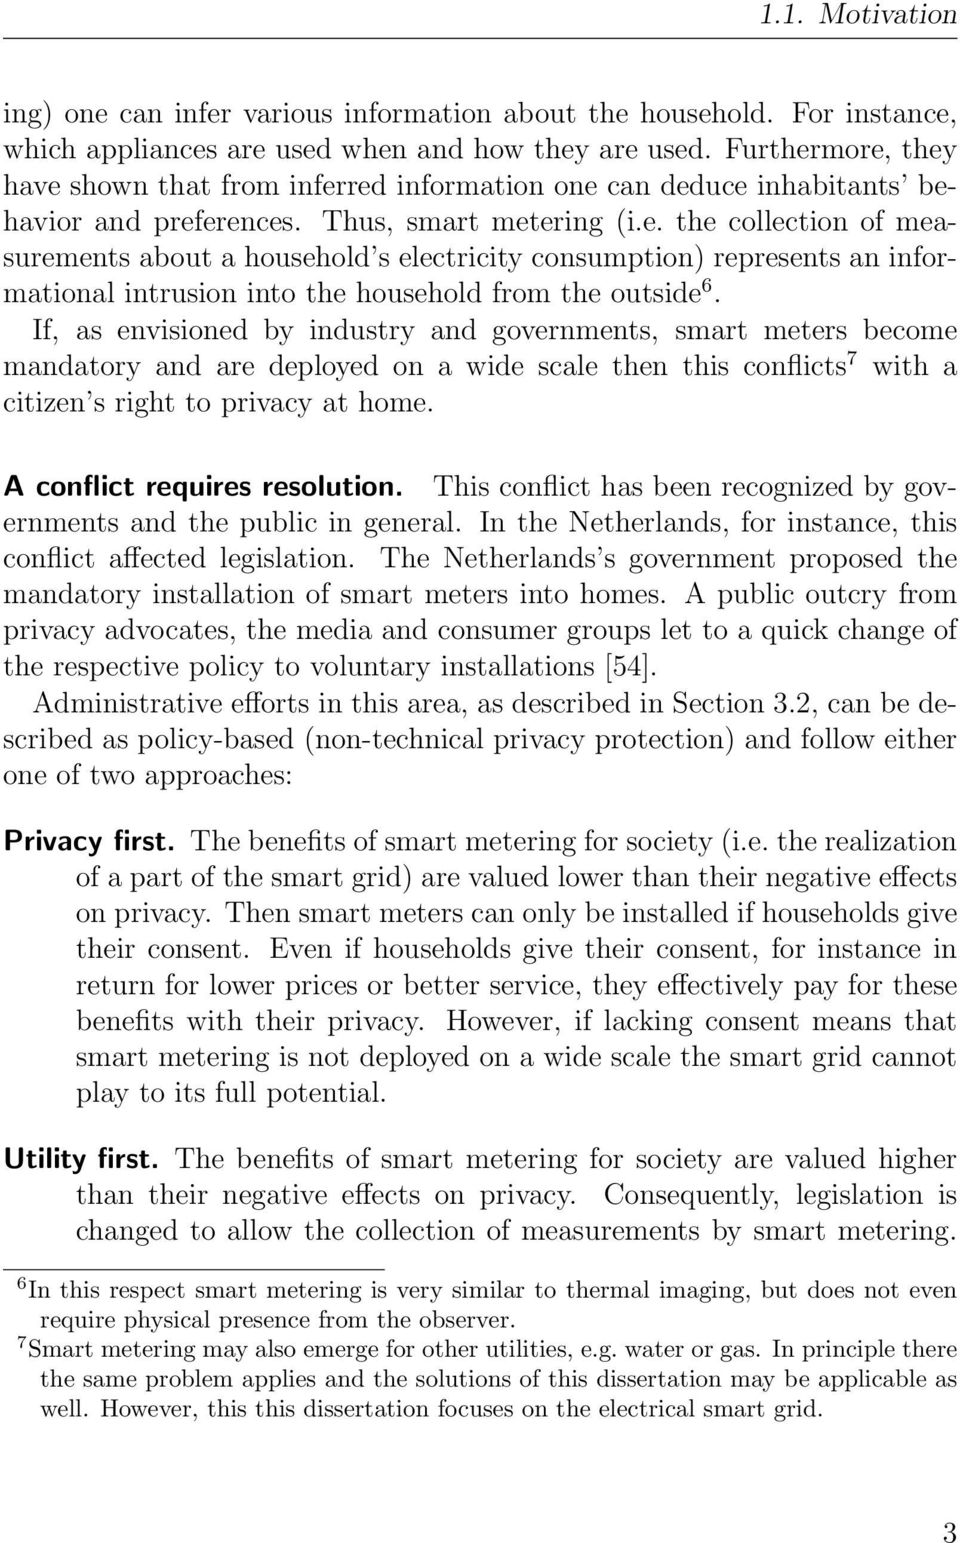 If, as envisioned by industry and governments, smart meters become mandatory and are deployed on a wide scale then this conflicts 7 with a citizen s right to privacy at home.